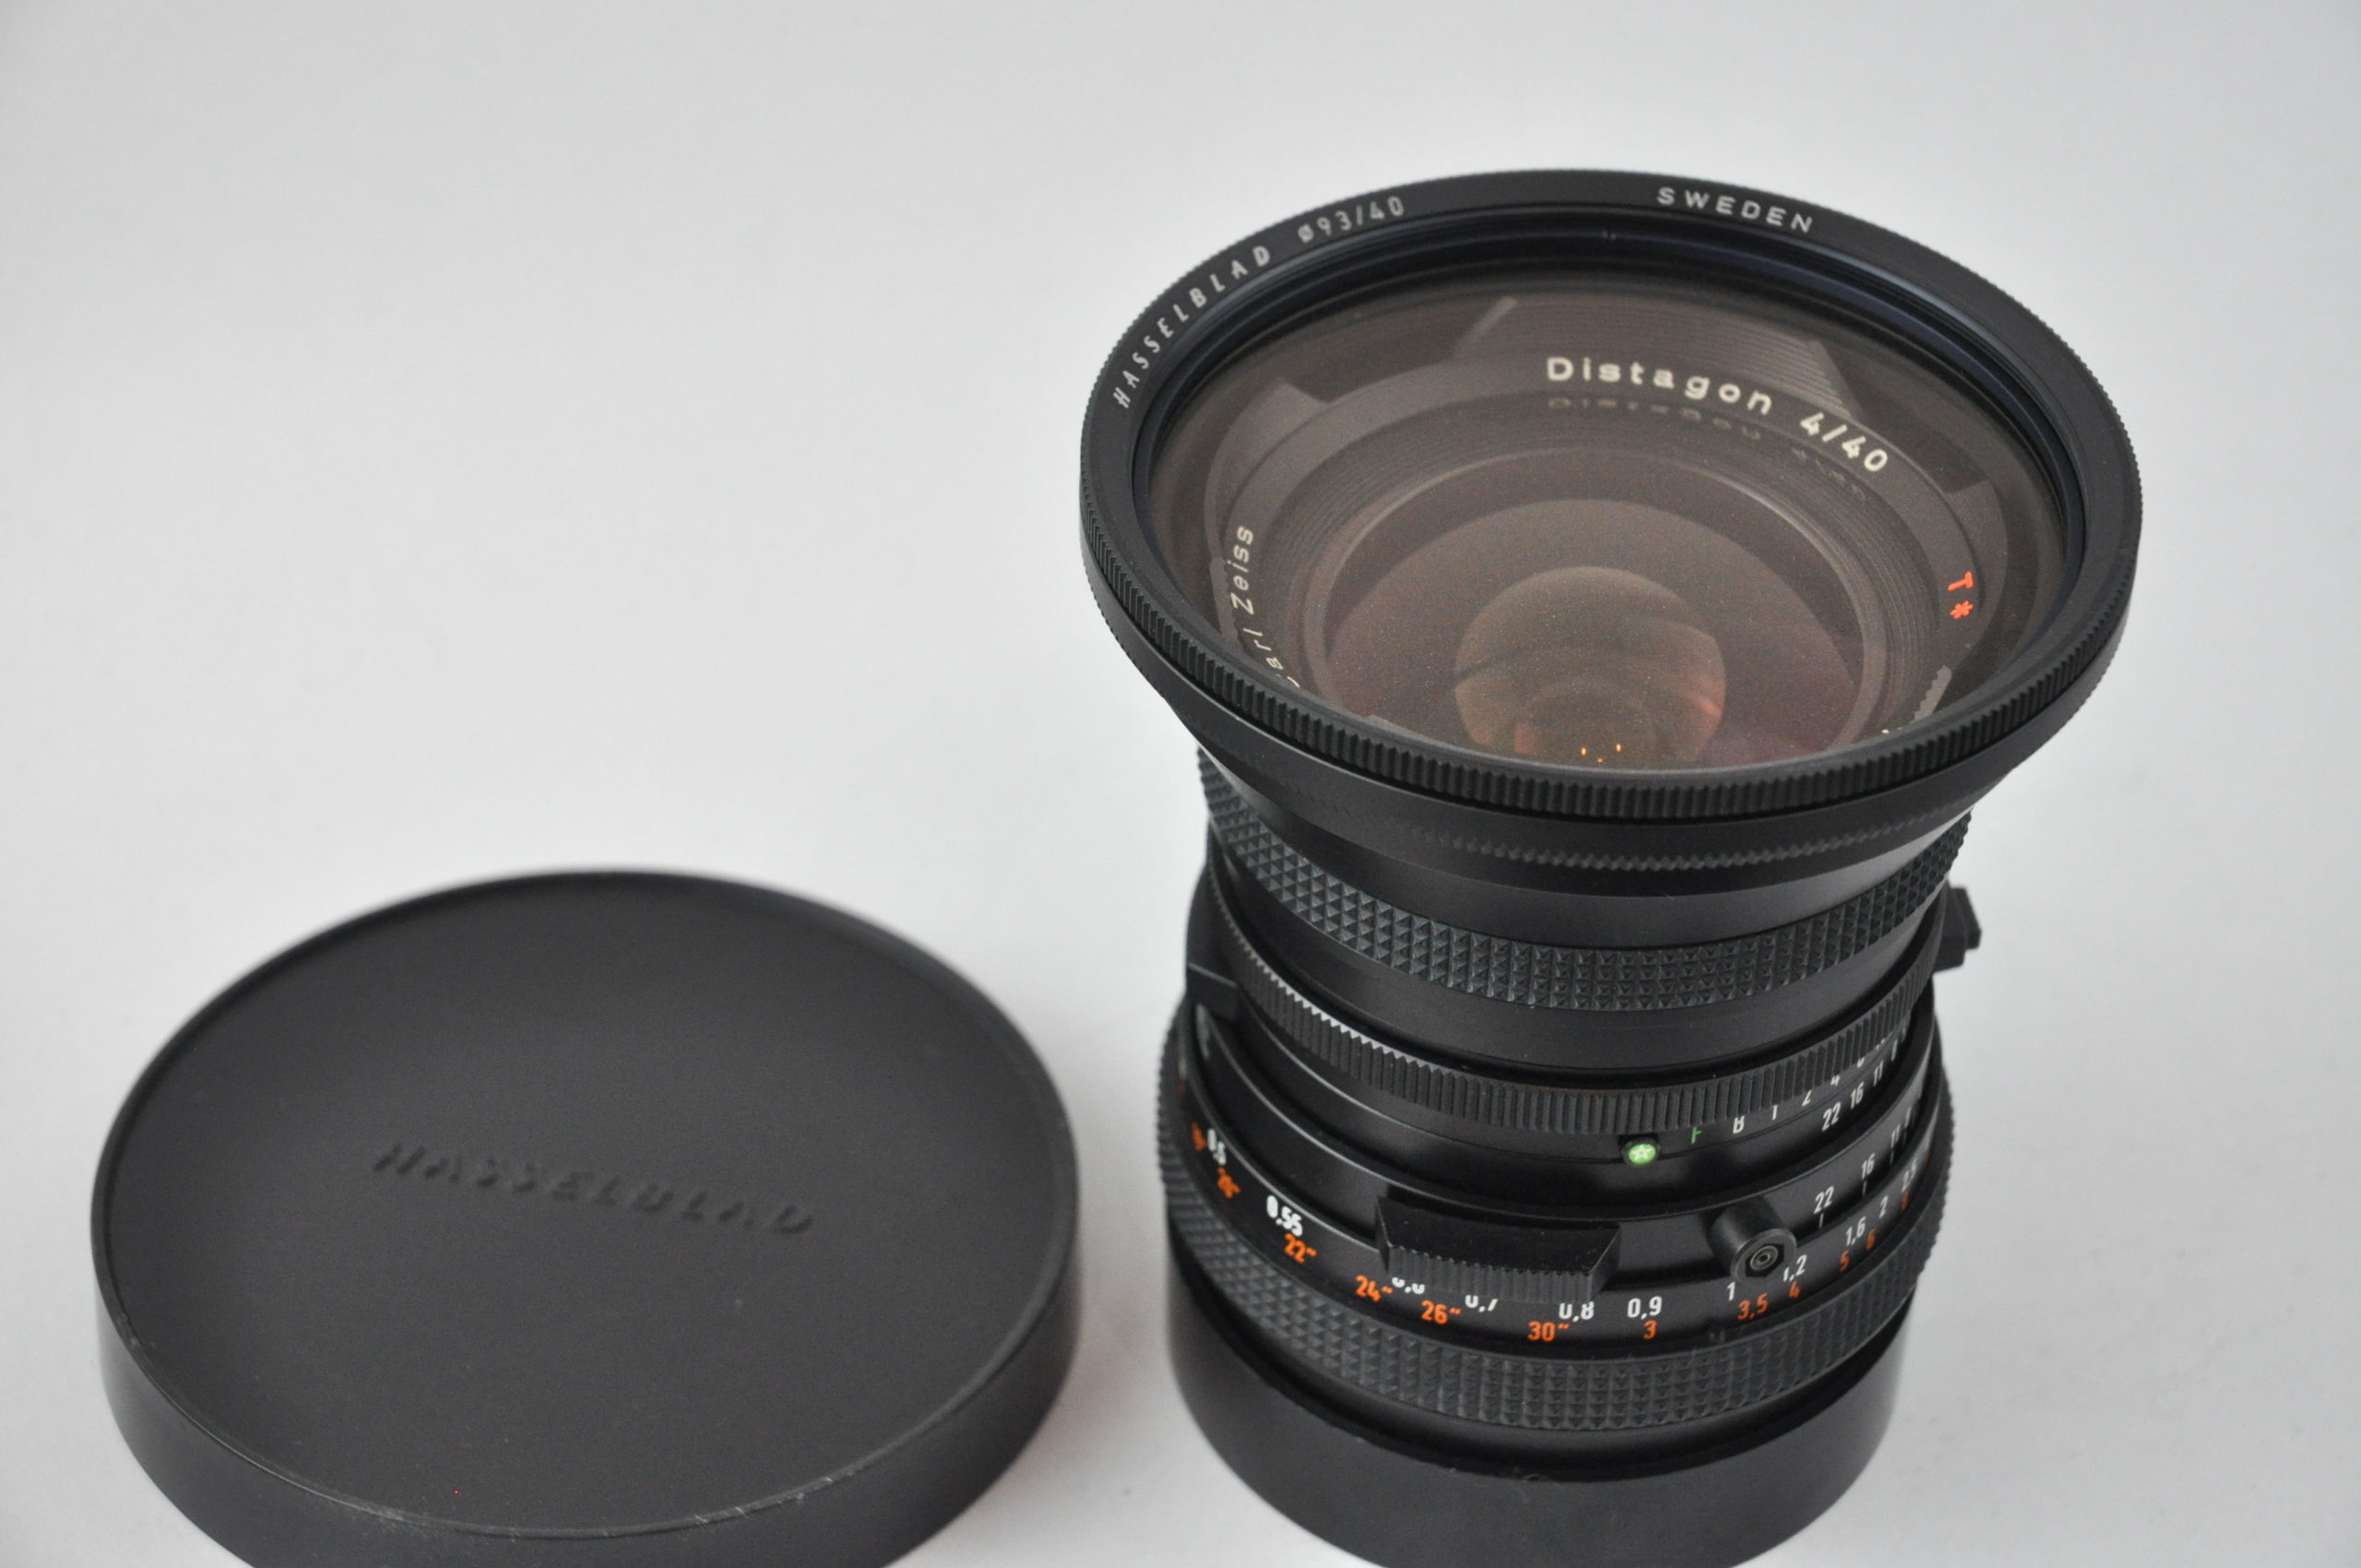 CF Distagon 40mm F4